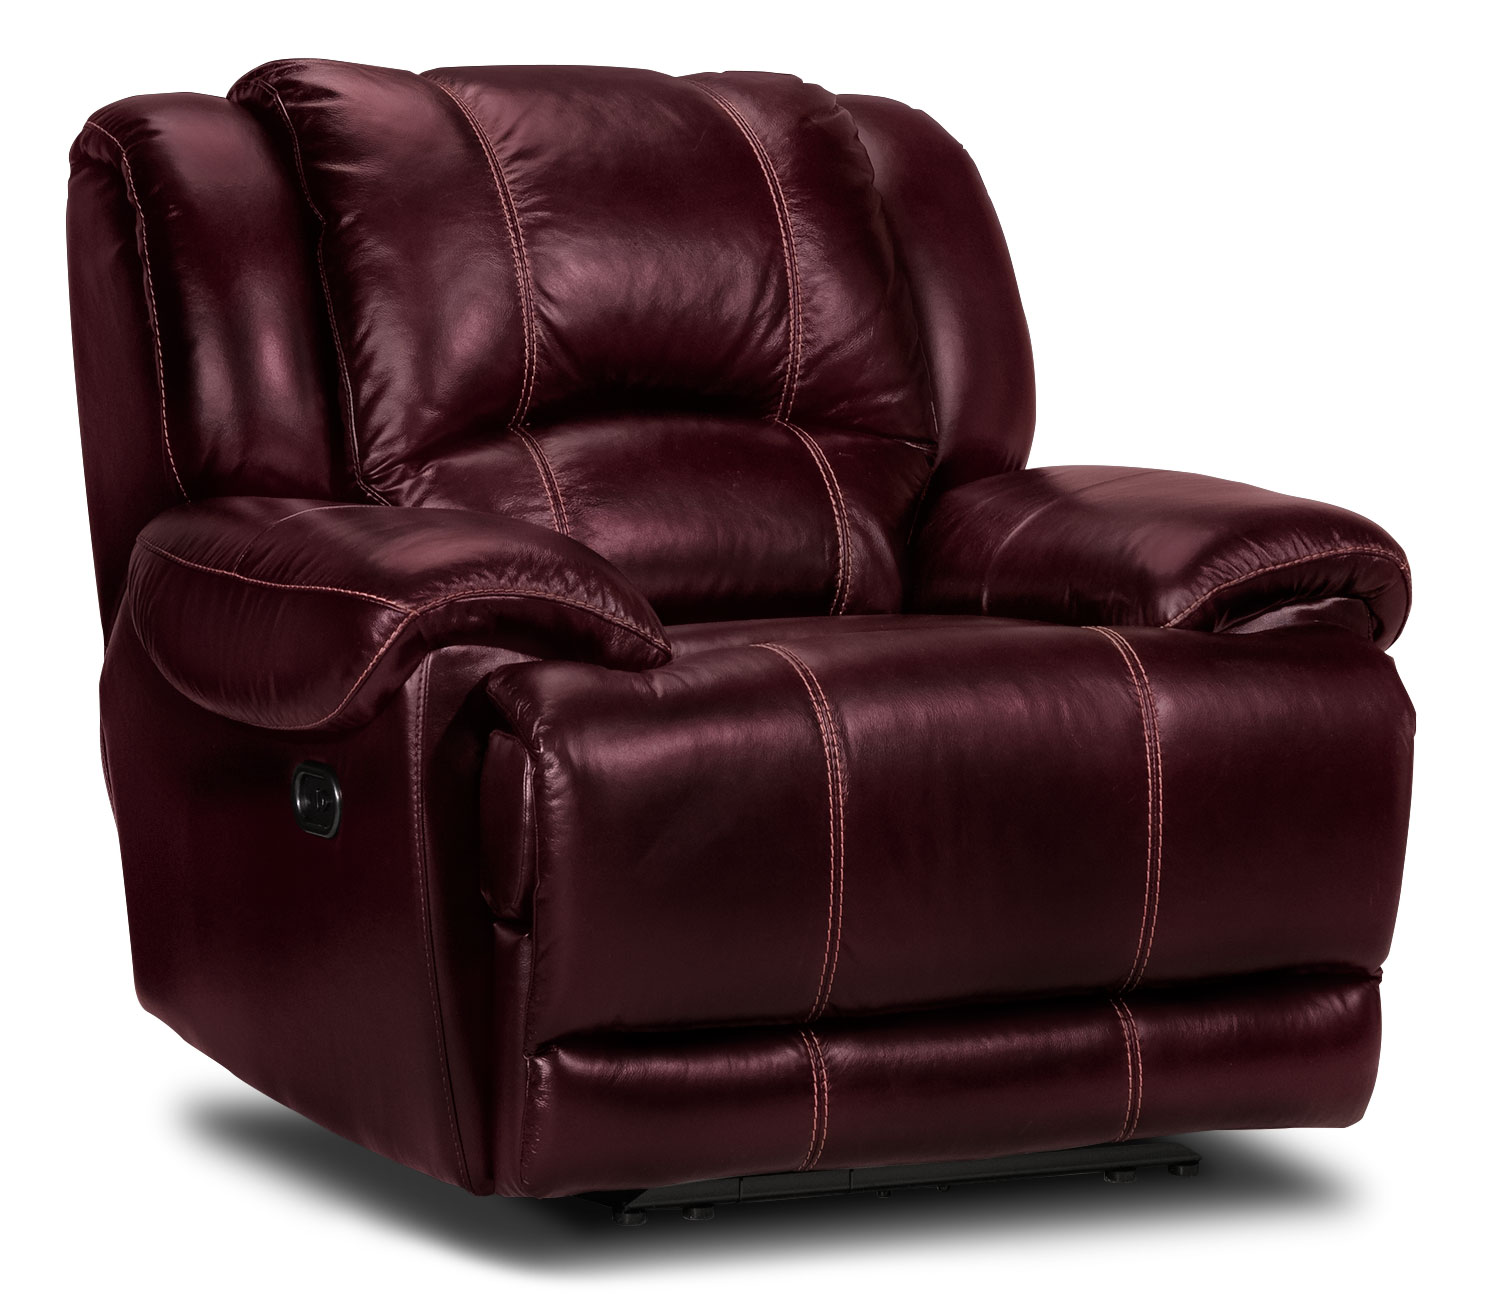 Living Room Furniture - Sinatra Power Recliner - Red